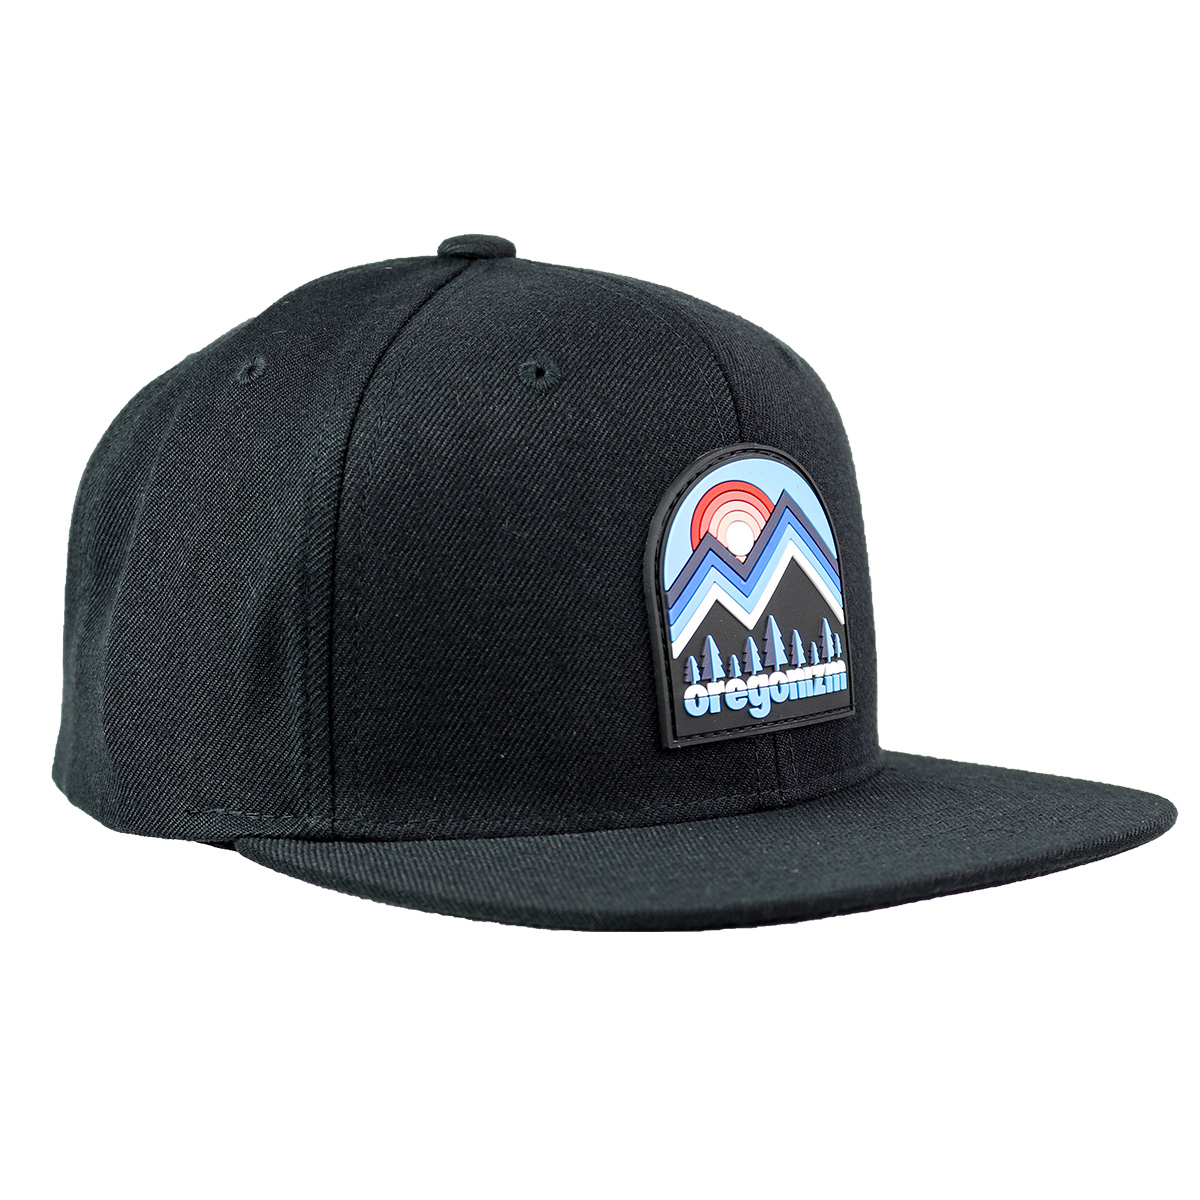 izm-productphoto-hats-youth-mountainscape-wool-black-primary